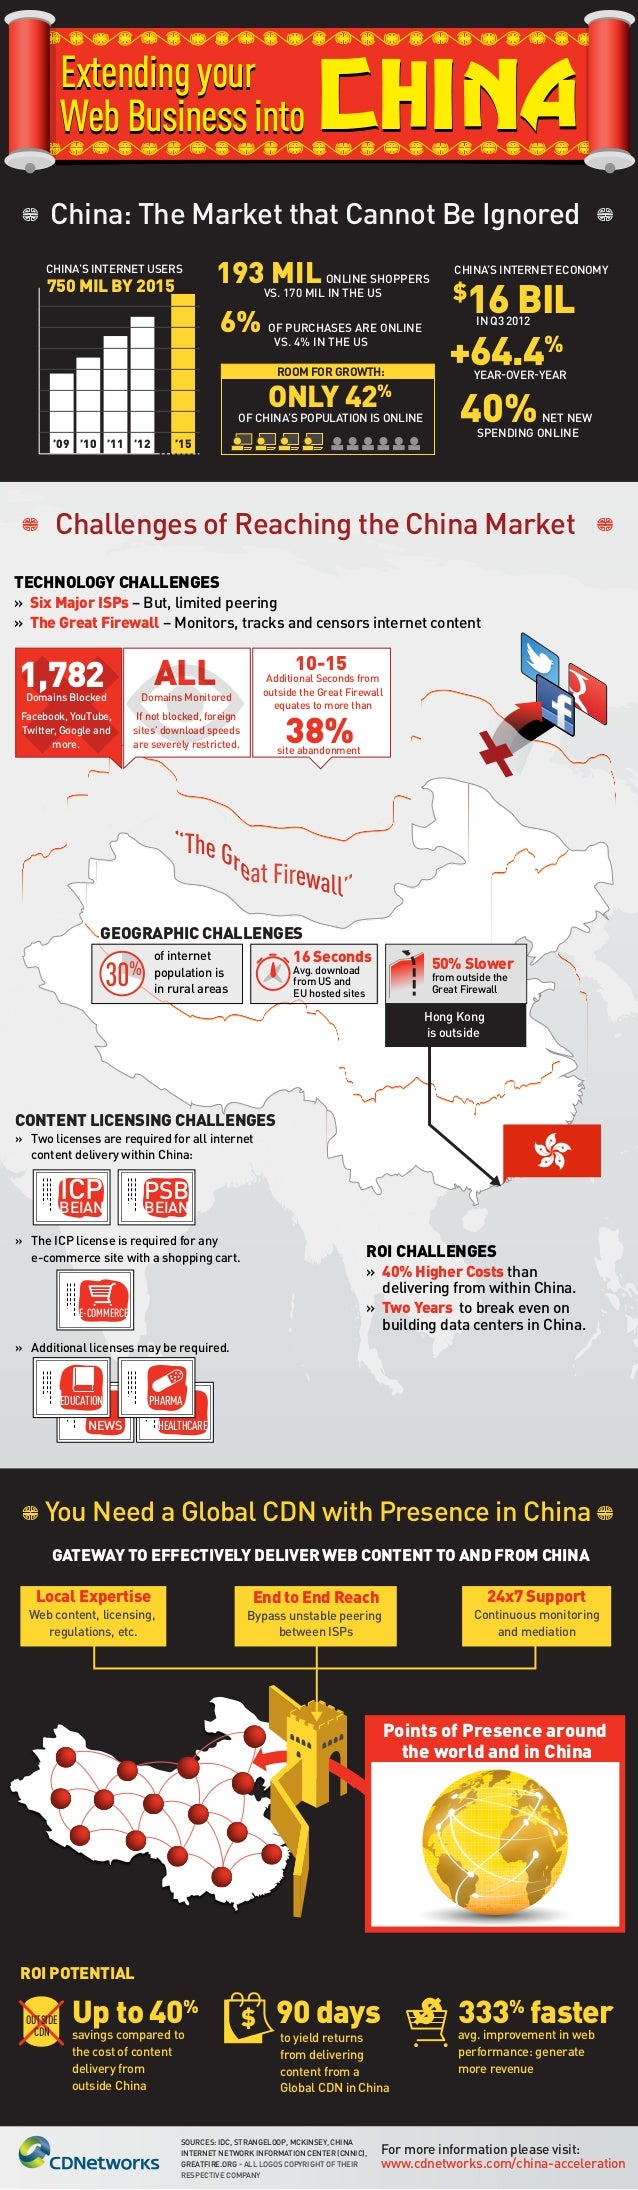 Extending your Web Business into China: The Market that Cannot Be Ignored CHINA'S INTERNET USERS  750 MIL BY 2015  193 MIL...